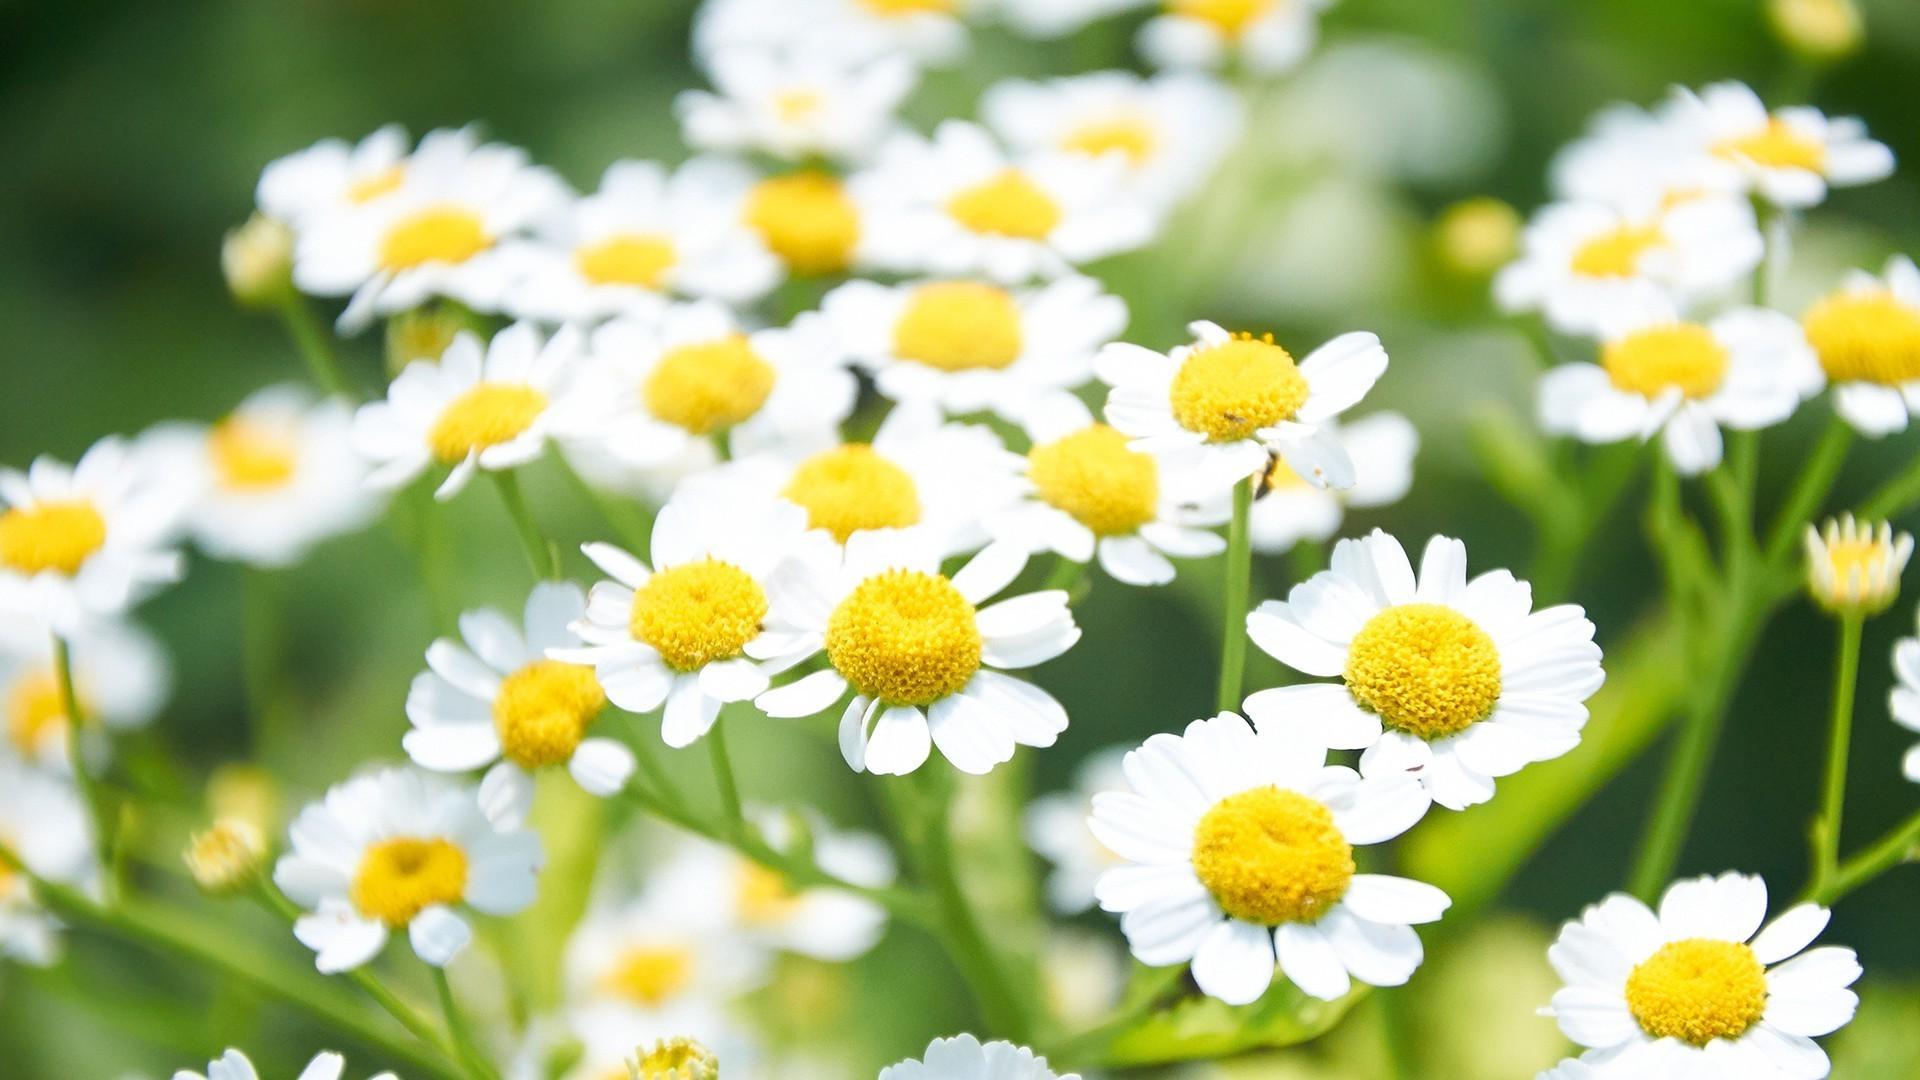 chamomile nature summer flora flower leaf hayfield bright garden petal fair weather field growth herbal color grass blooming floral close-up